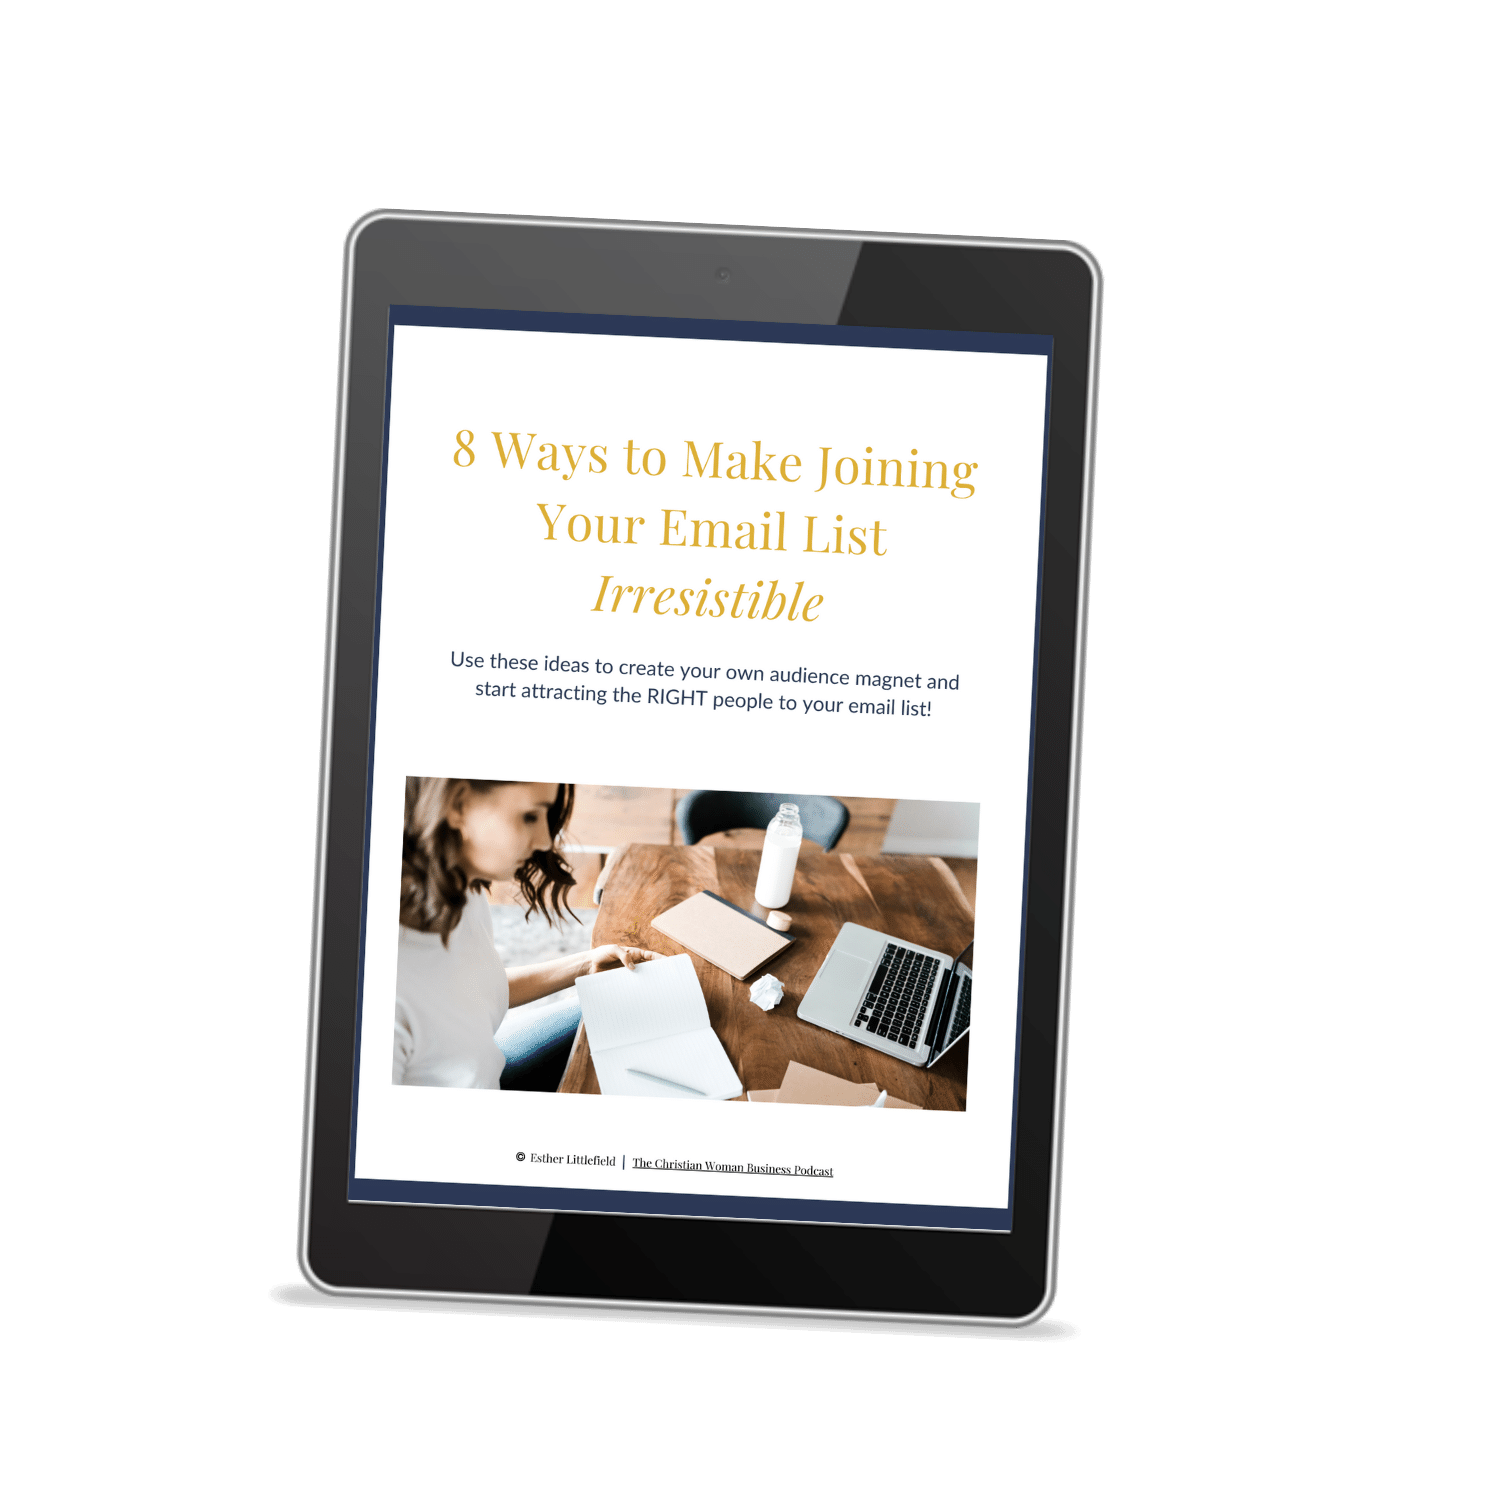 Image on ipad - 8 ways to make joining your email list irresistible